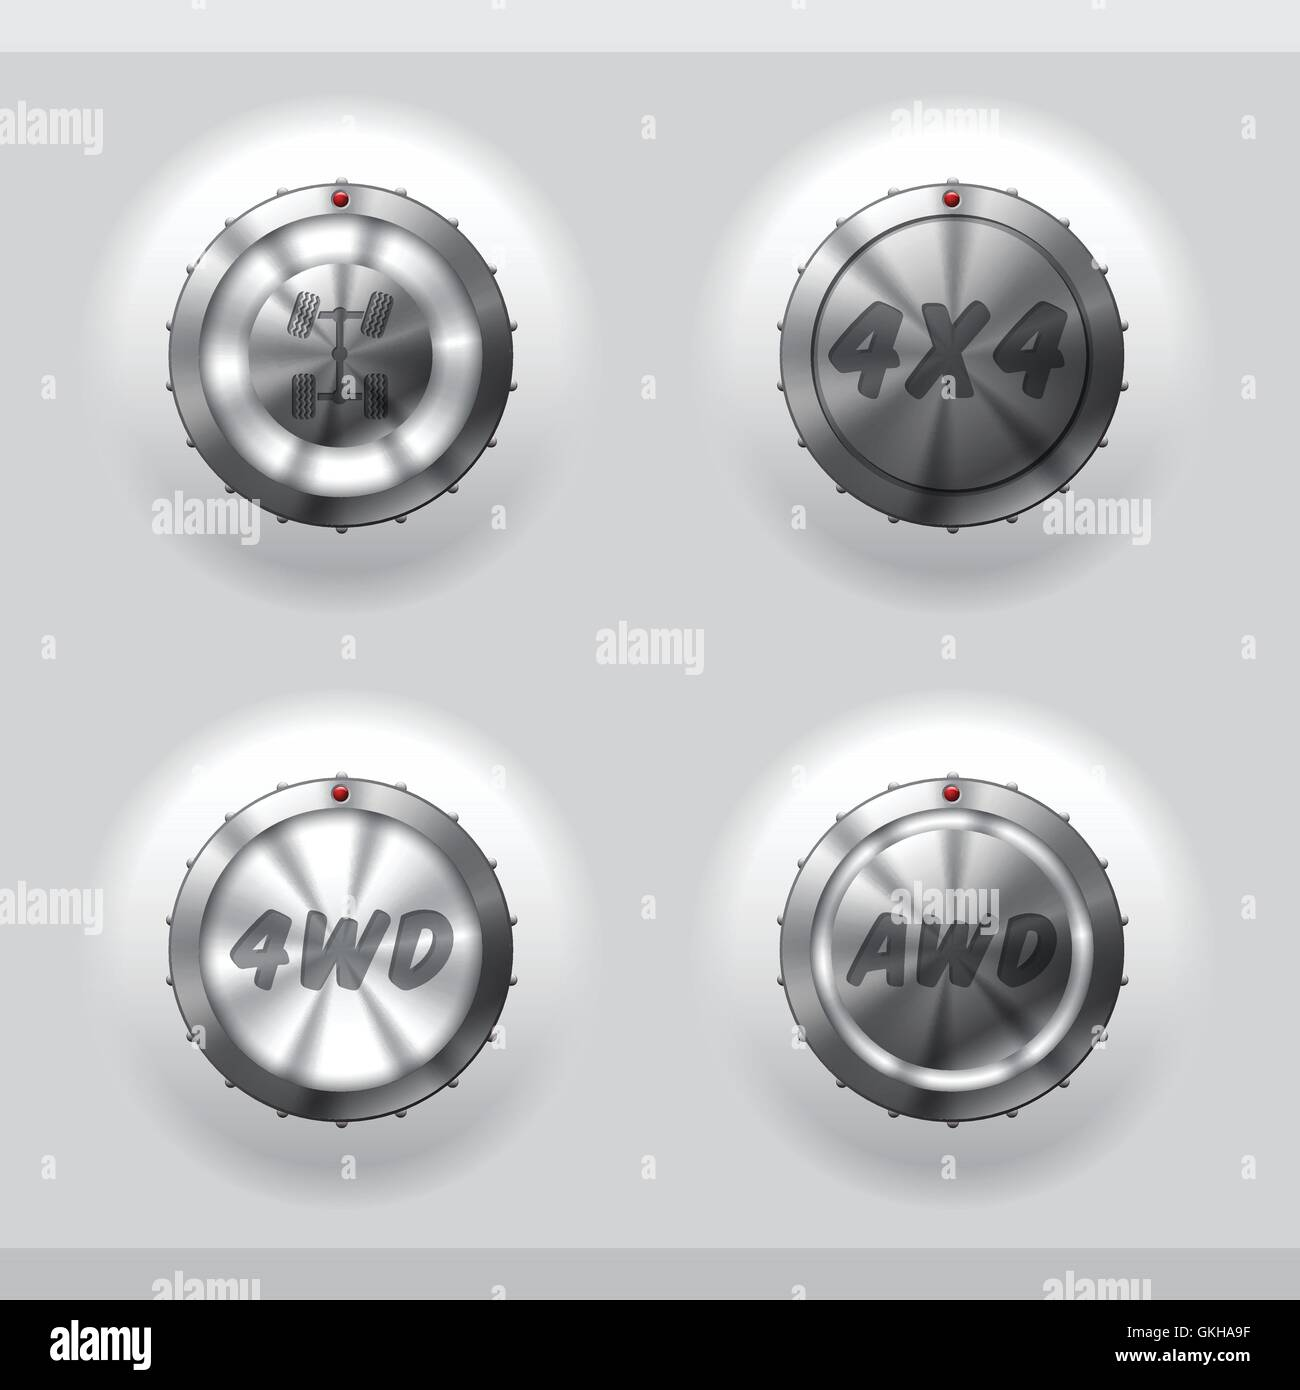 All wheel drive activation buttons - Stock Image